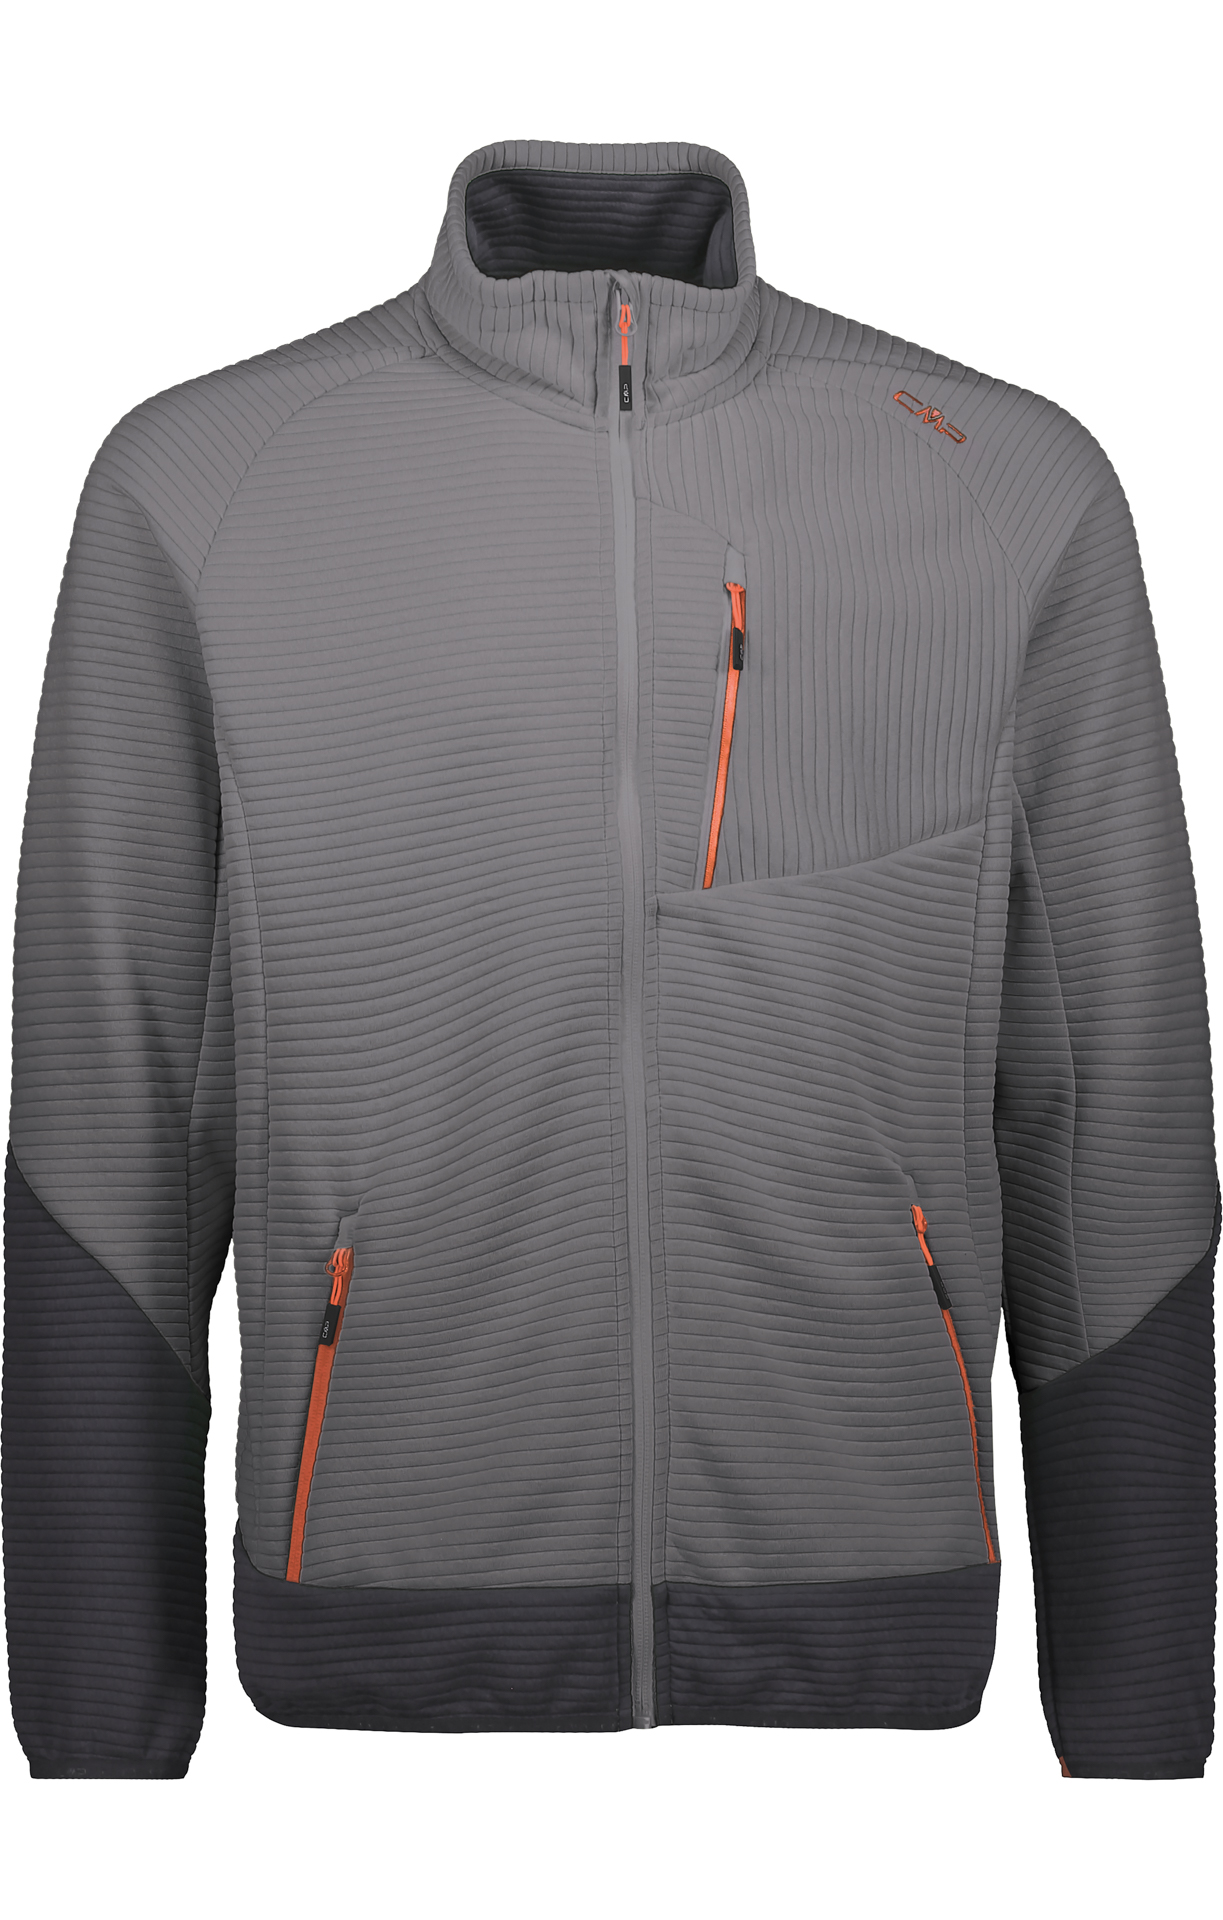 Herrenjacke Outdoor CMP